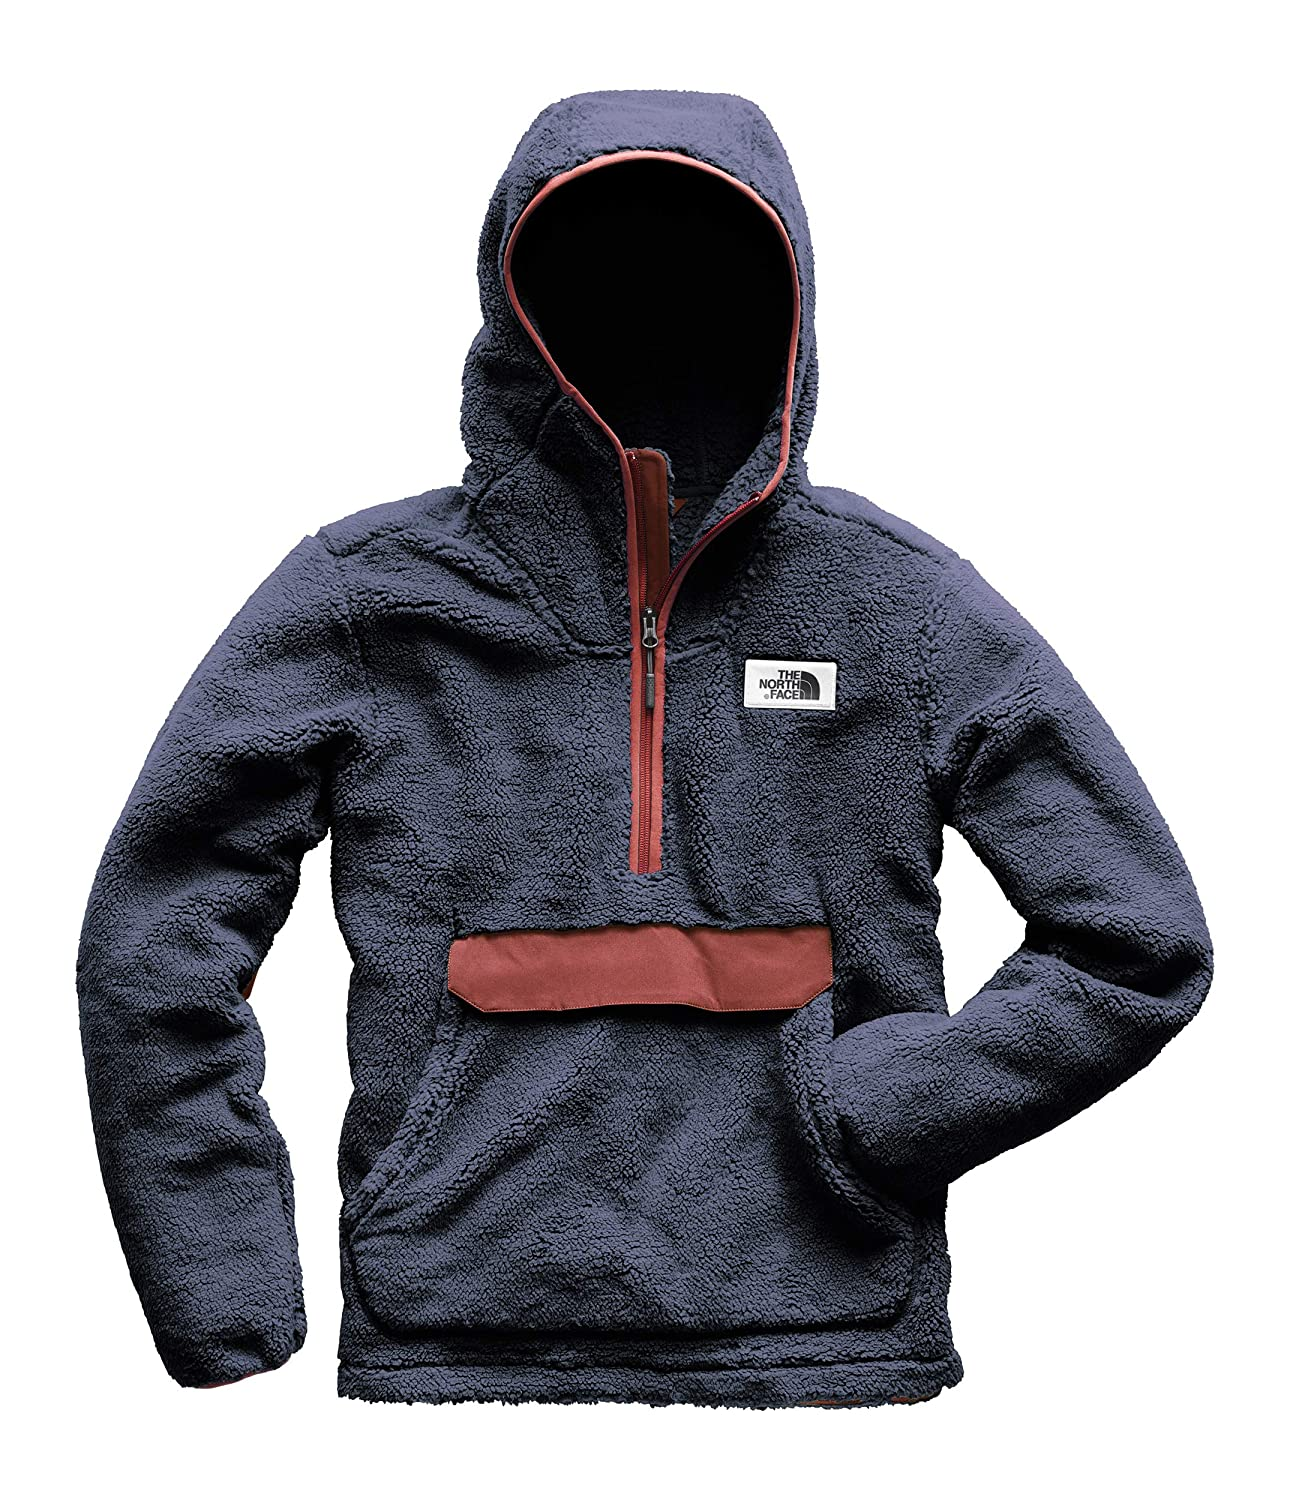 6aaf814c6 The North Face Men's CAMPSHIRE Pullover Hoodie at Amazon Men's ...